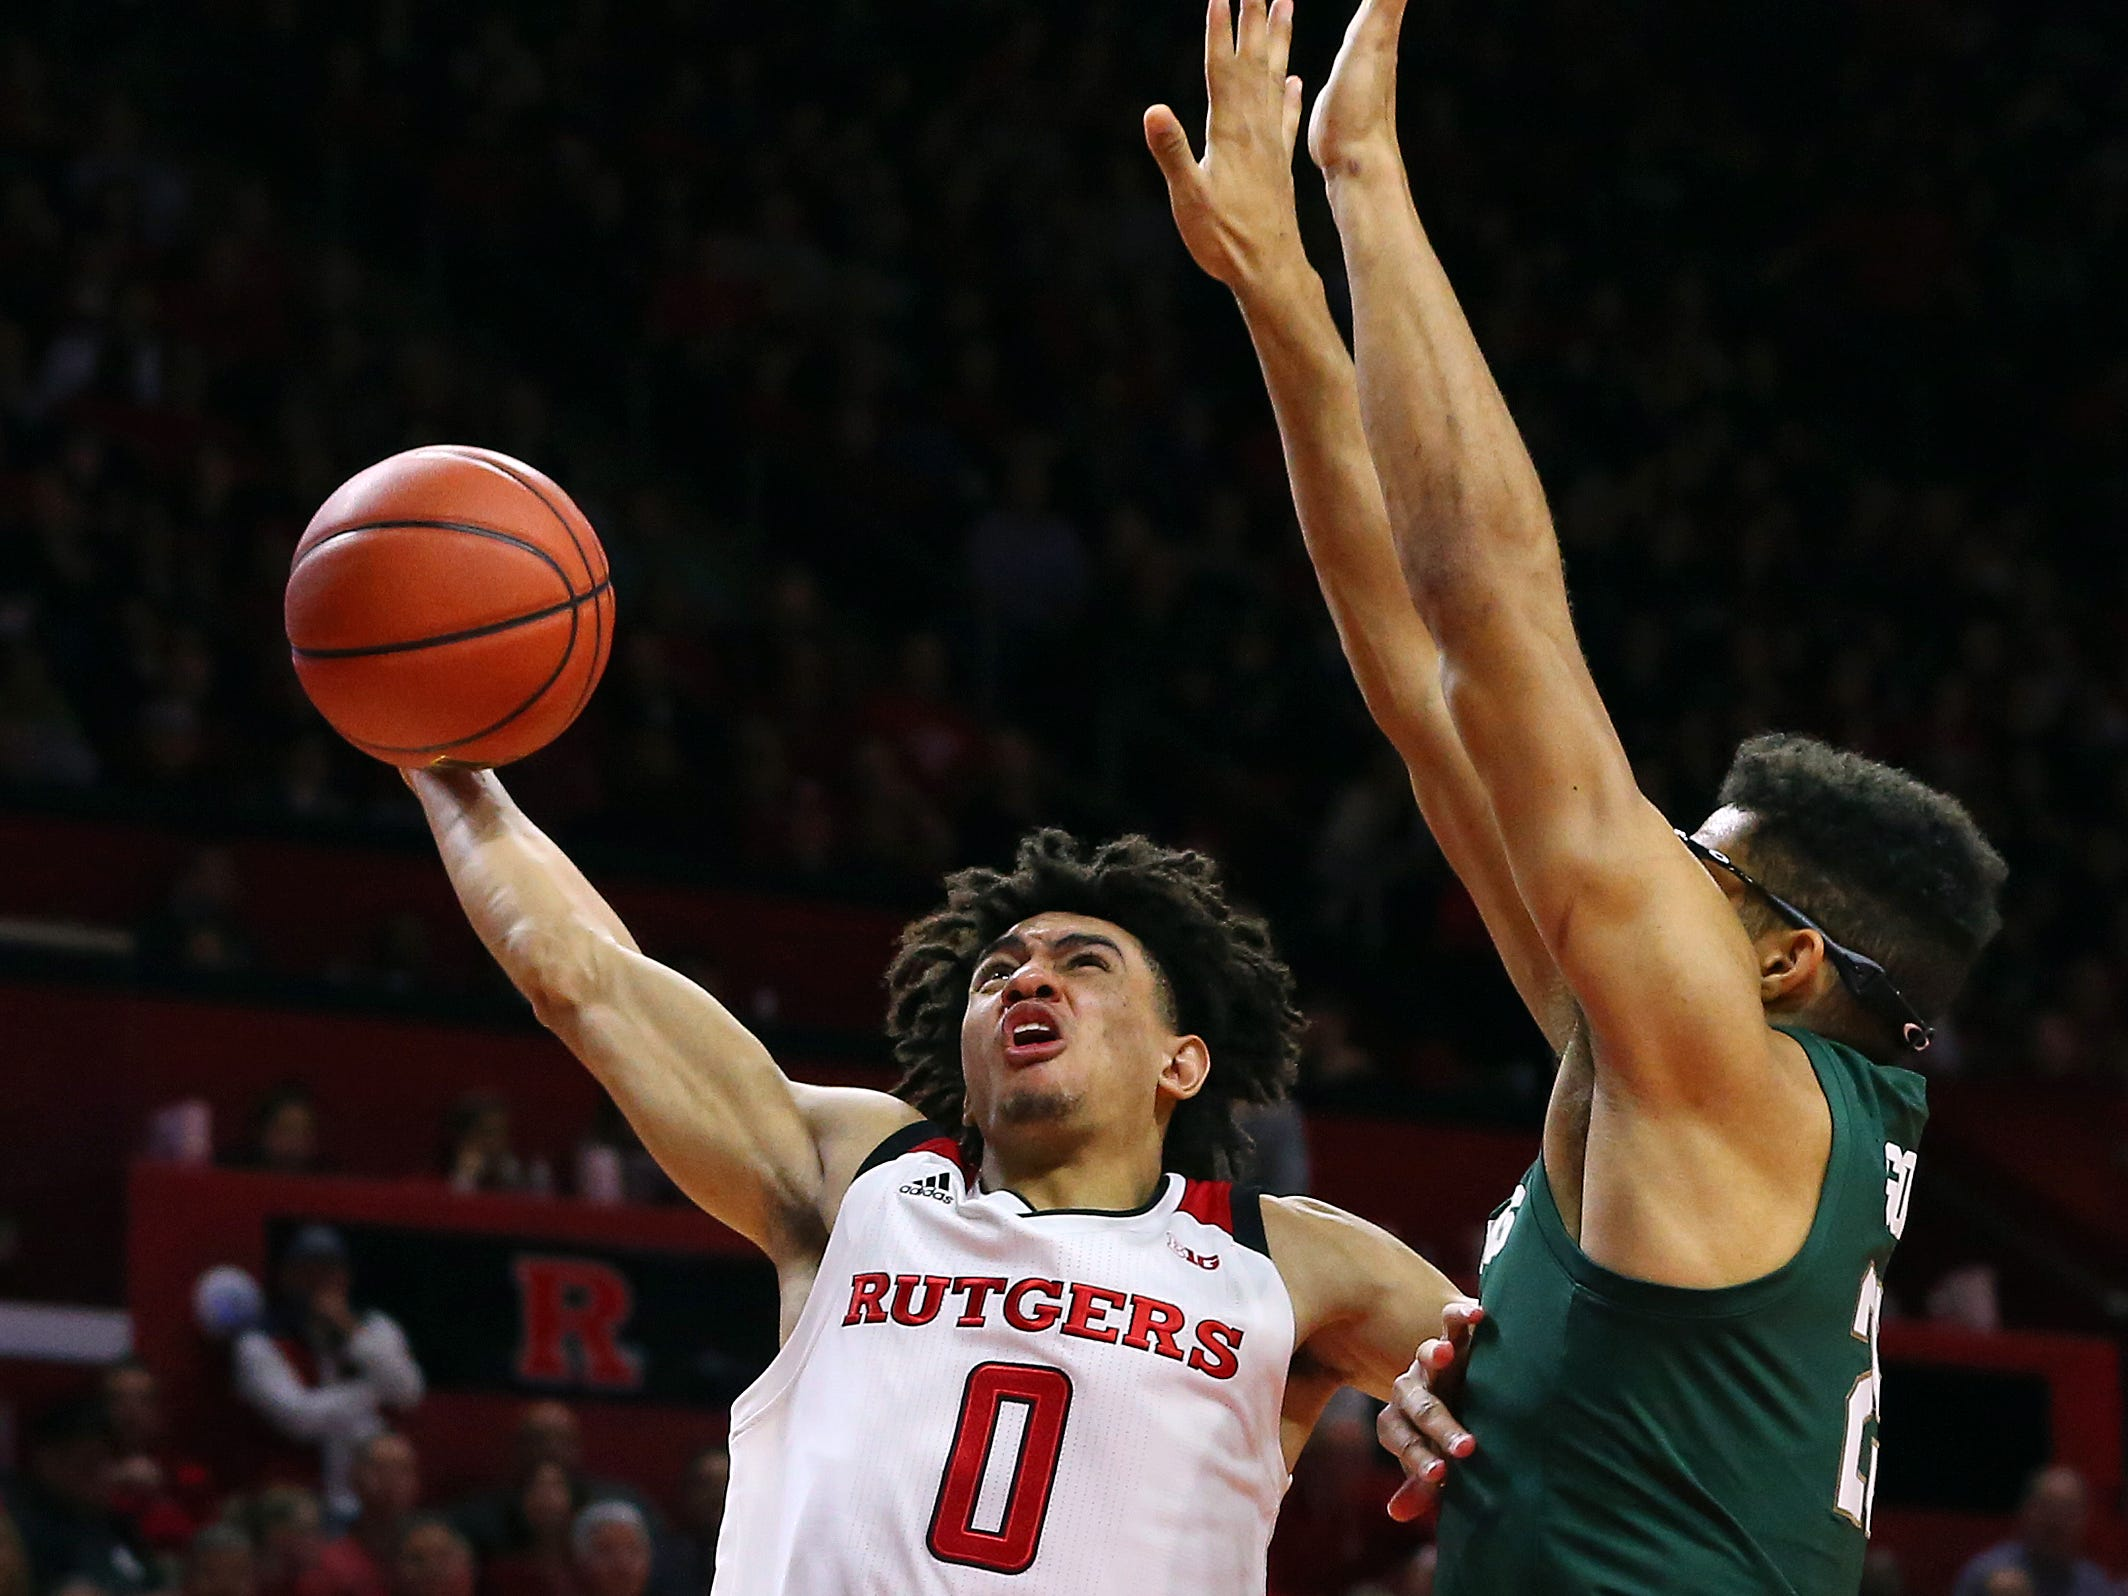 Geo Baker #0 of the Rutgers Scarlet Knights attempts a shot as Kenny Goins #25 of the Michigan State Spartans defends during the second half of a college basketball game at the Rutgers Athletic Center on November 30, 2018 in Piscataway, New Jersey. Michigan State defeated Rutgers 78-67.